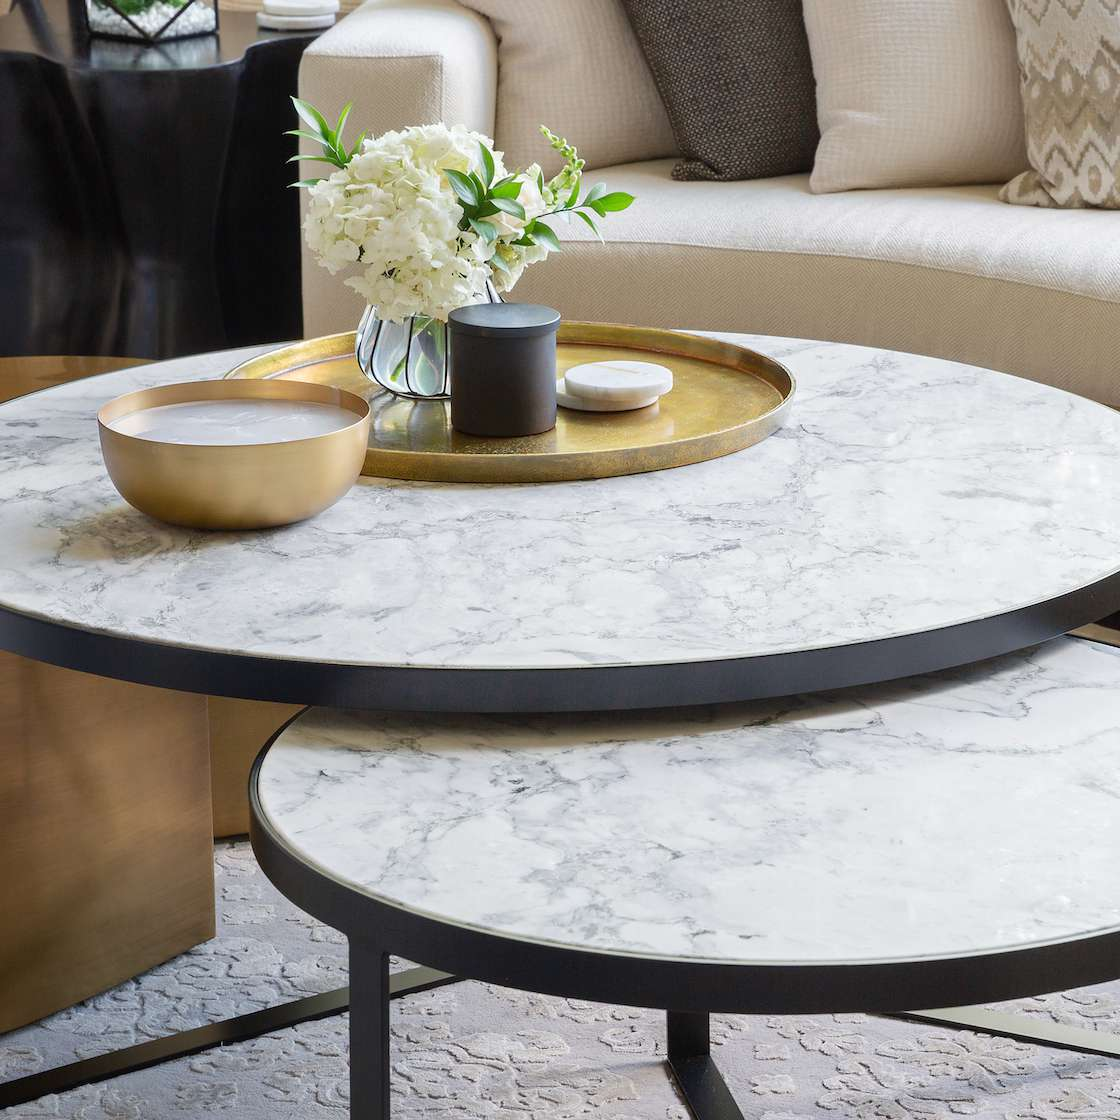 Coffee table with gold accents